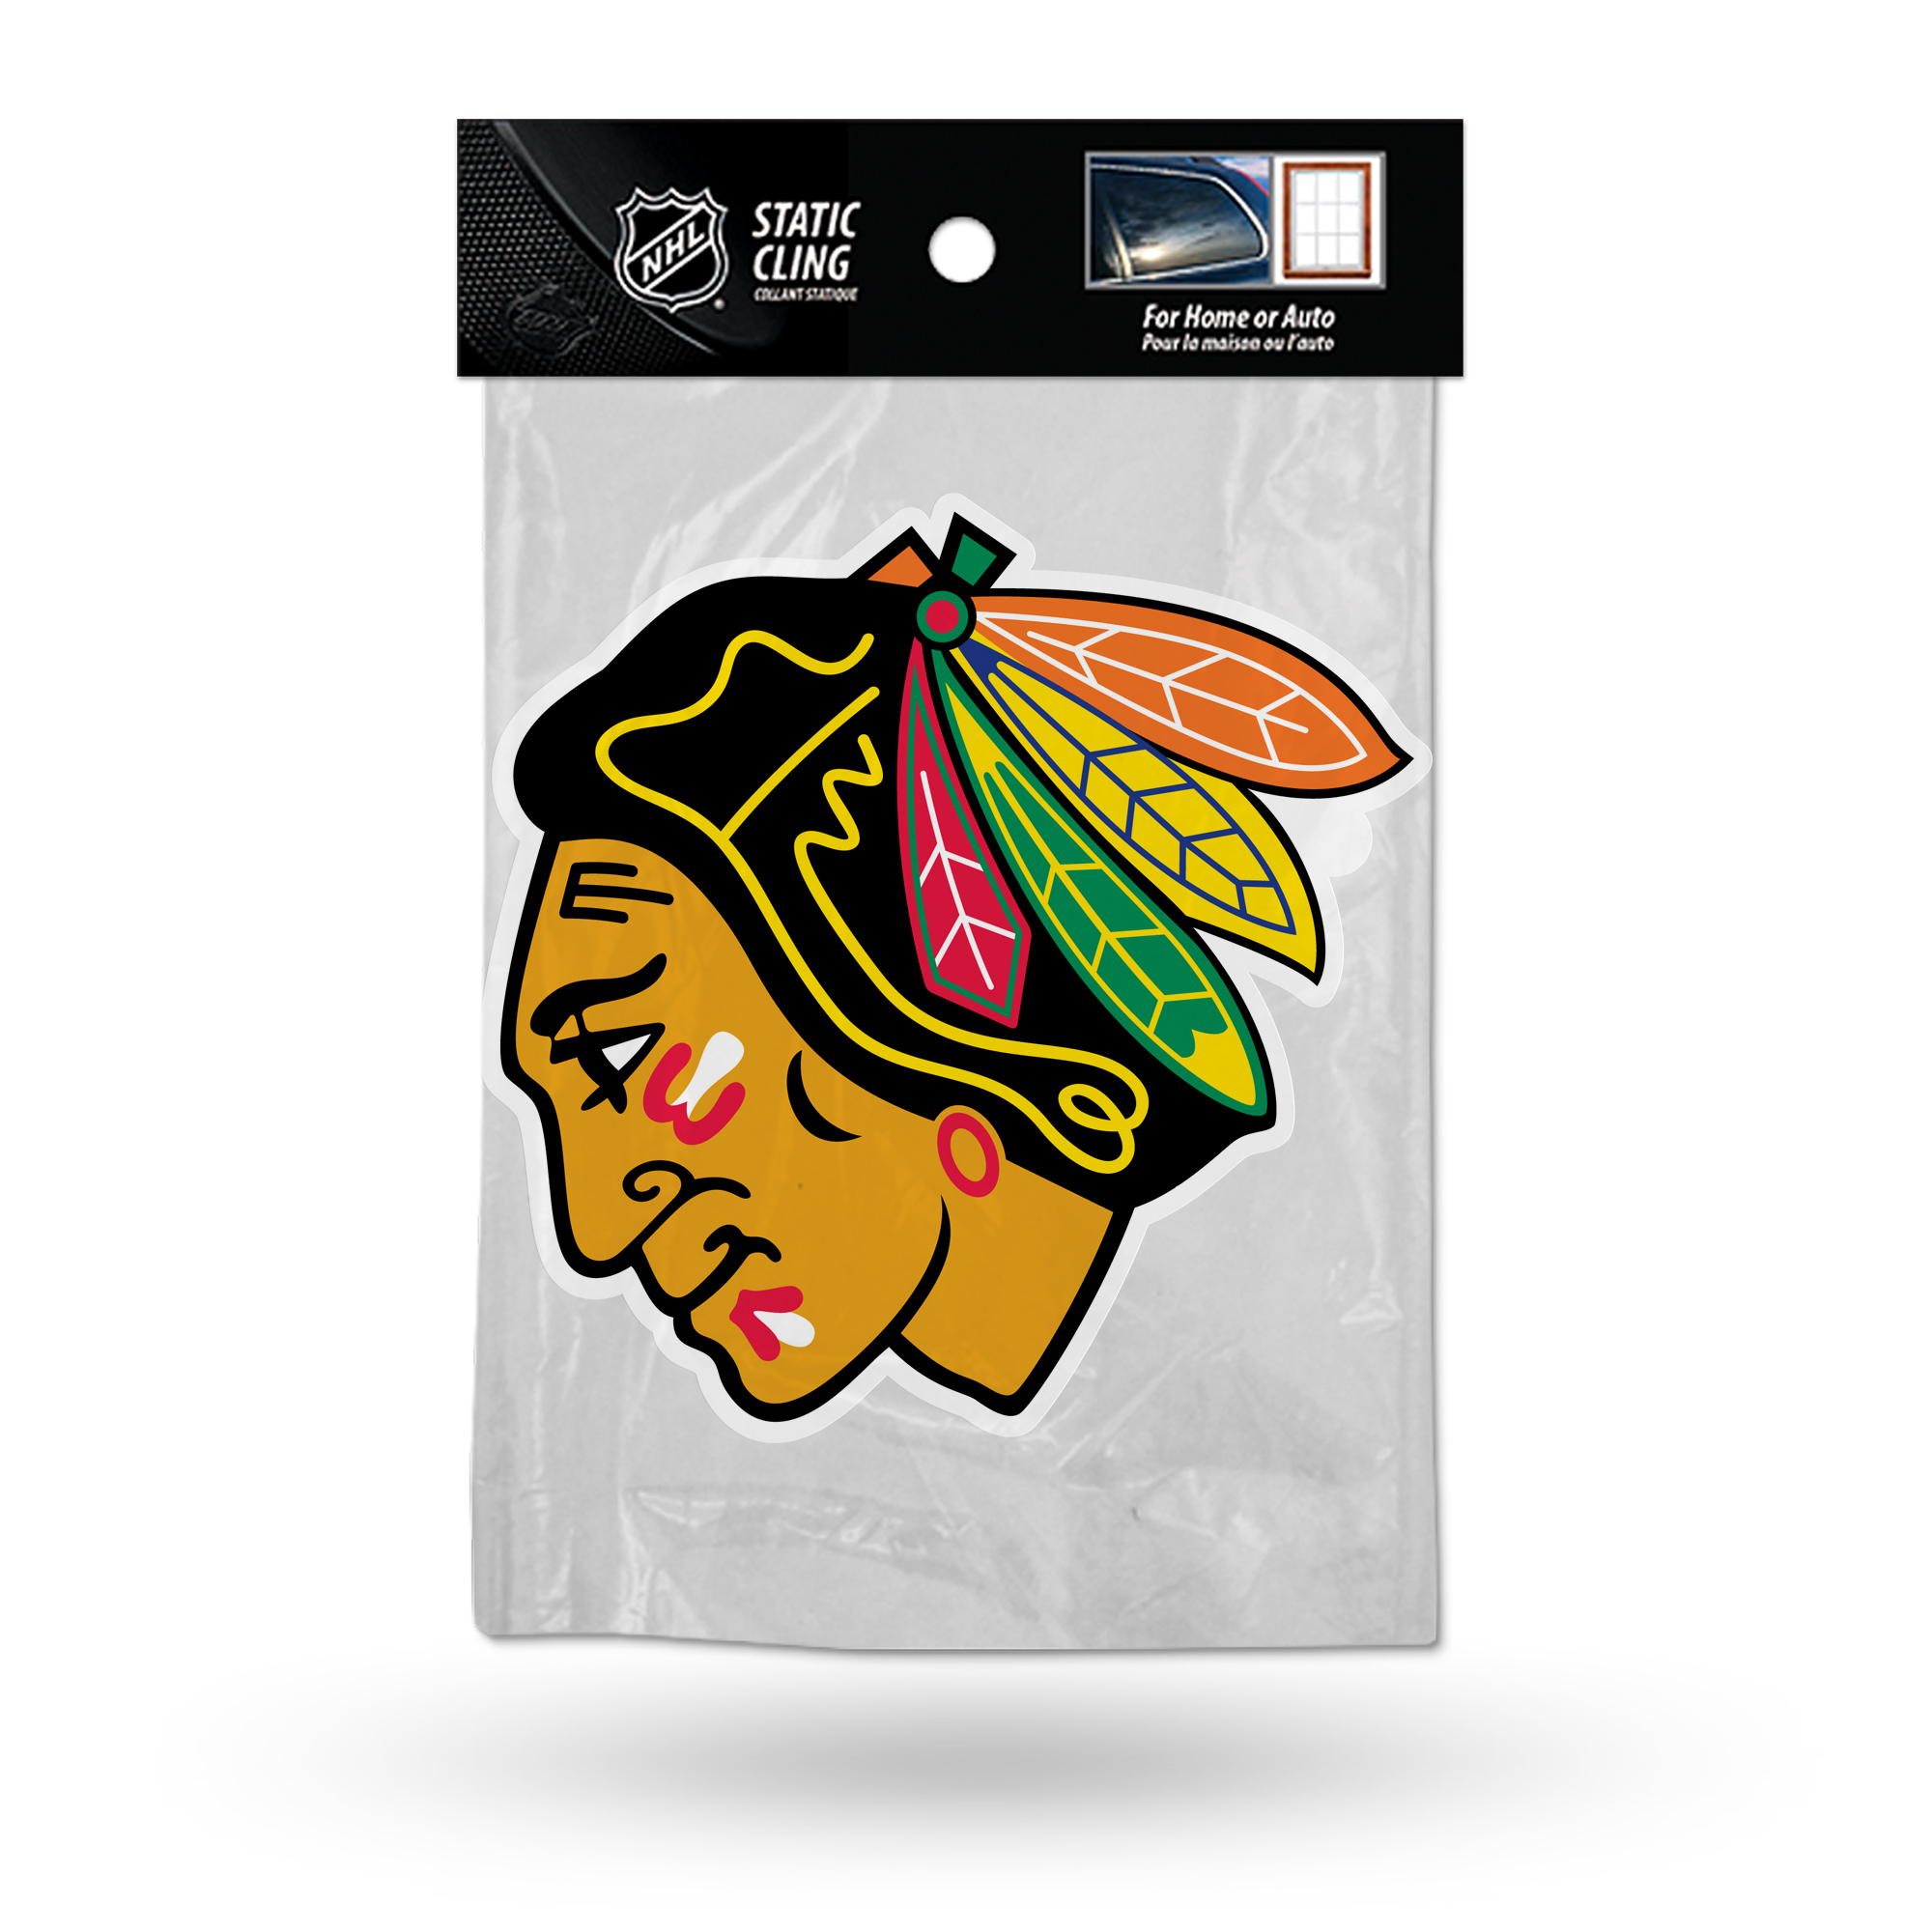 Chicago Blackhawks Official NHL 5 inch  Car Window Cling Decal by Rico